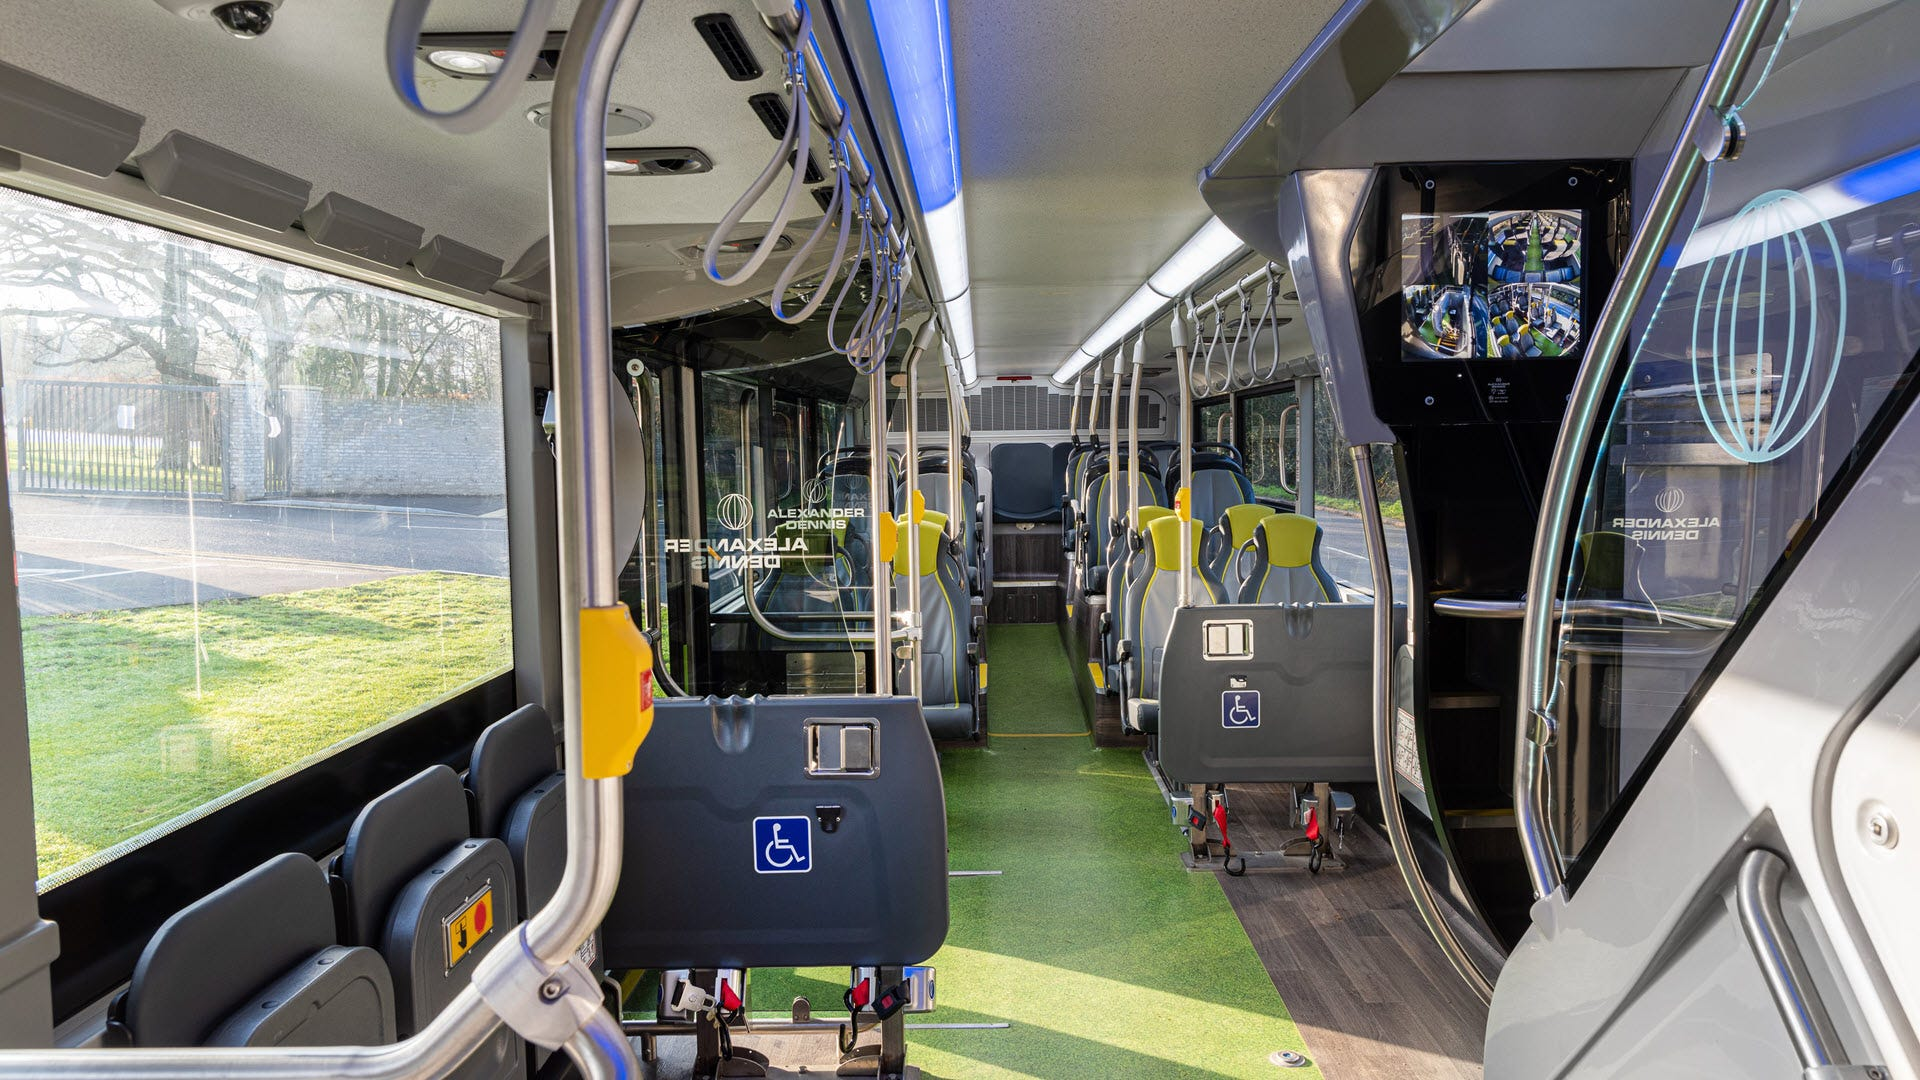 The interior of an electric bus